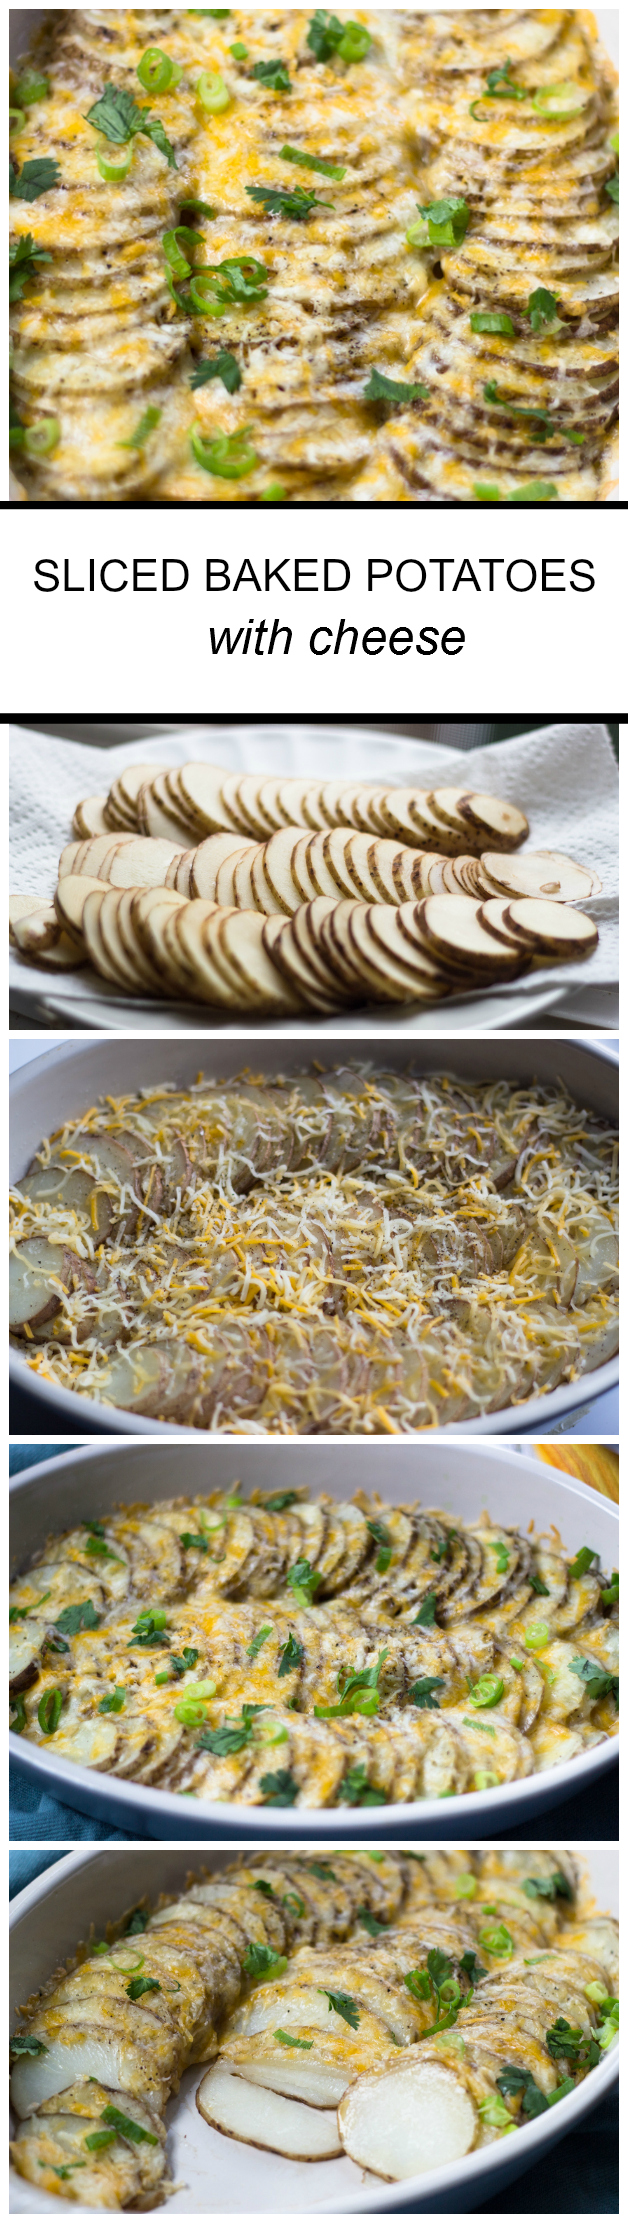 Easy Sliced Baked Potatoes with Cheese